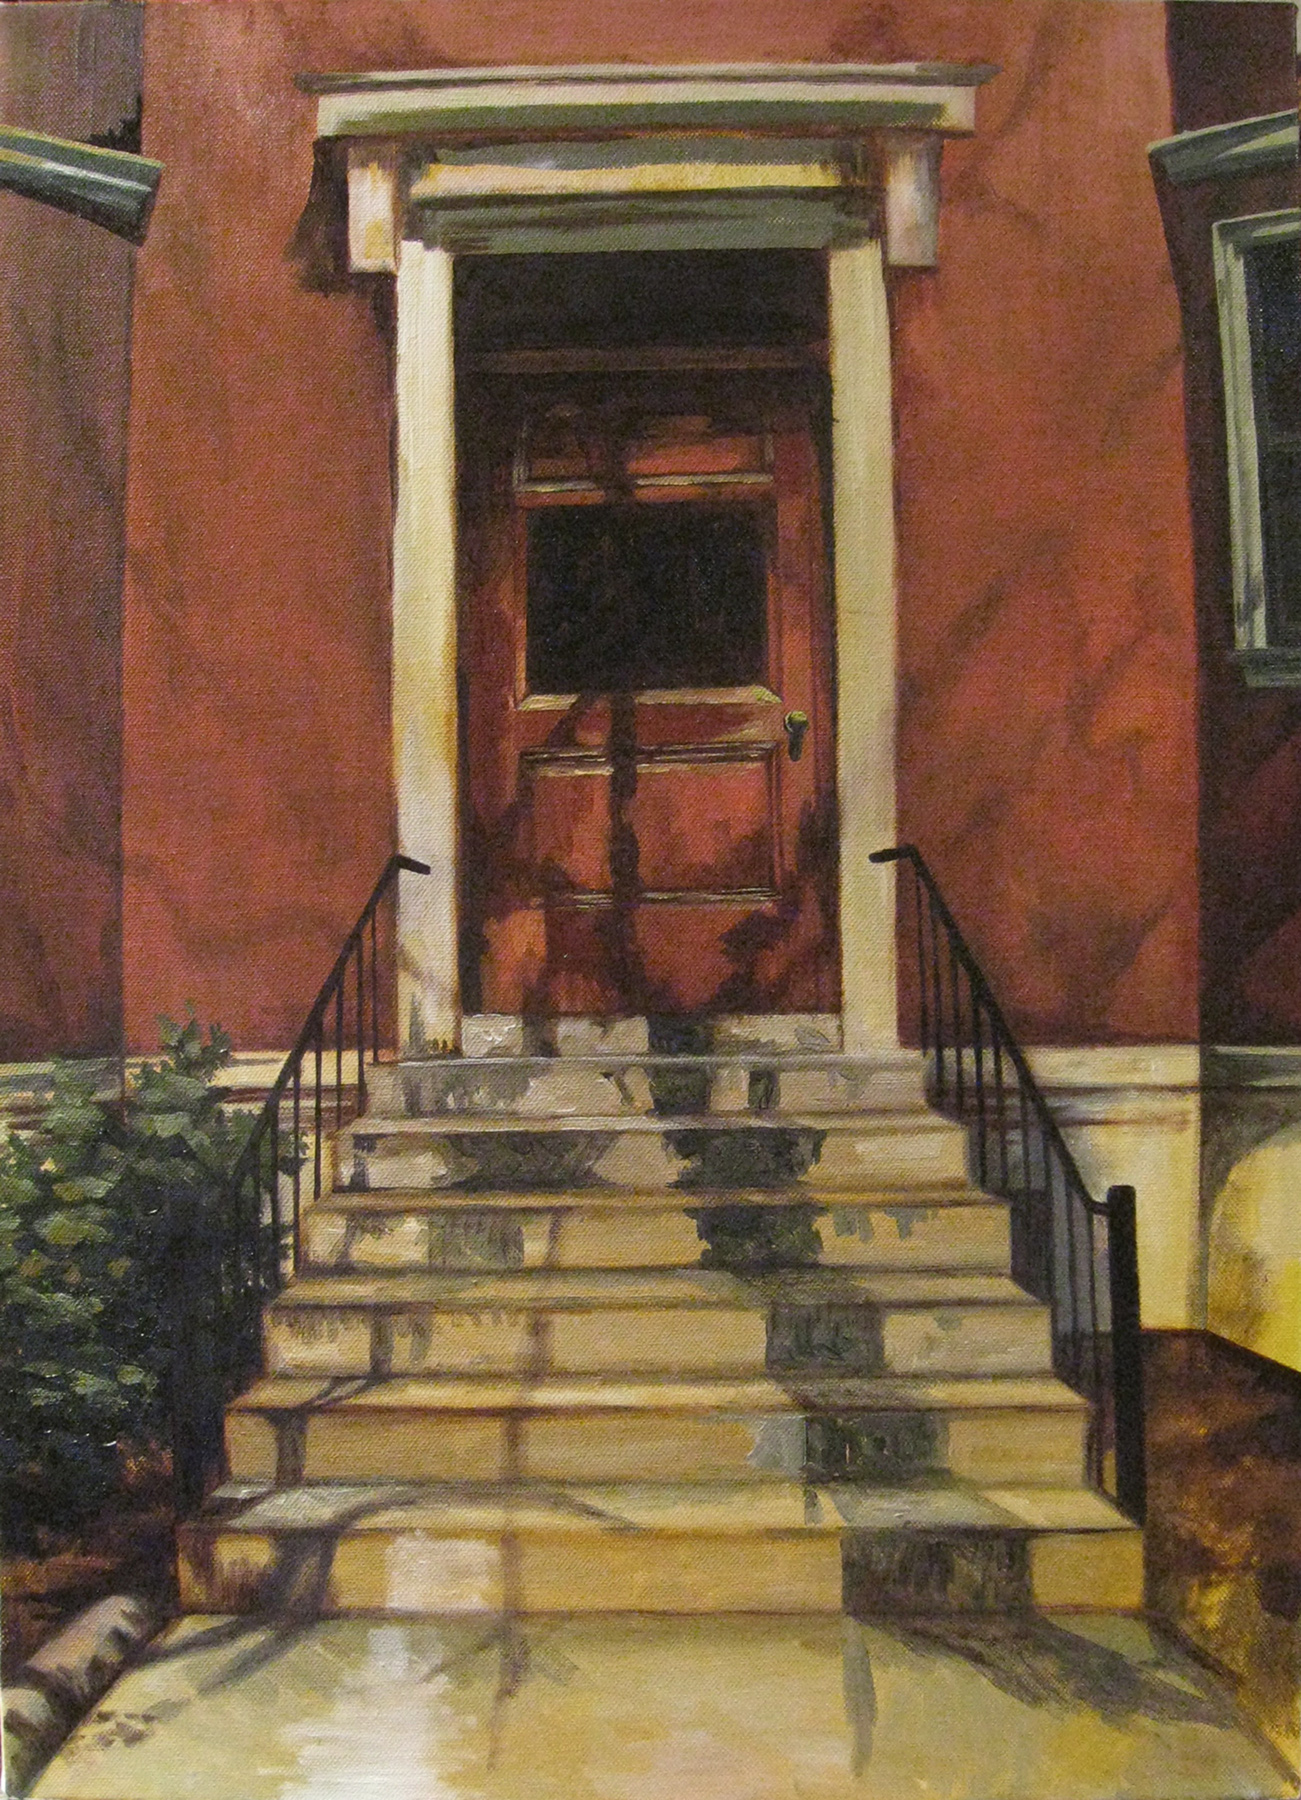 30 Hemenway   2011 20x24  oil on canvas